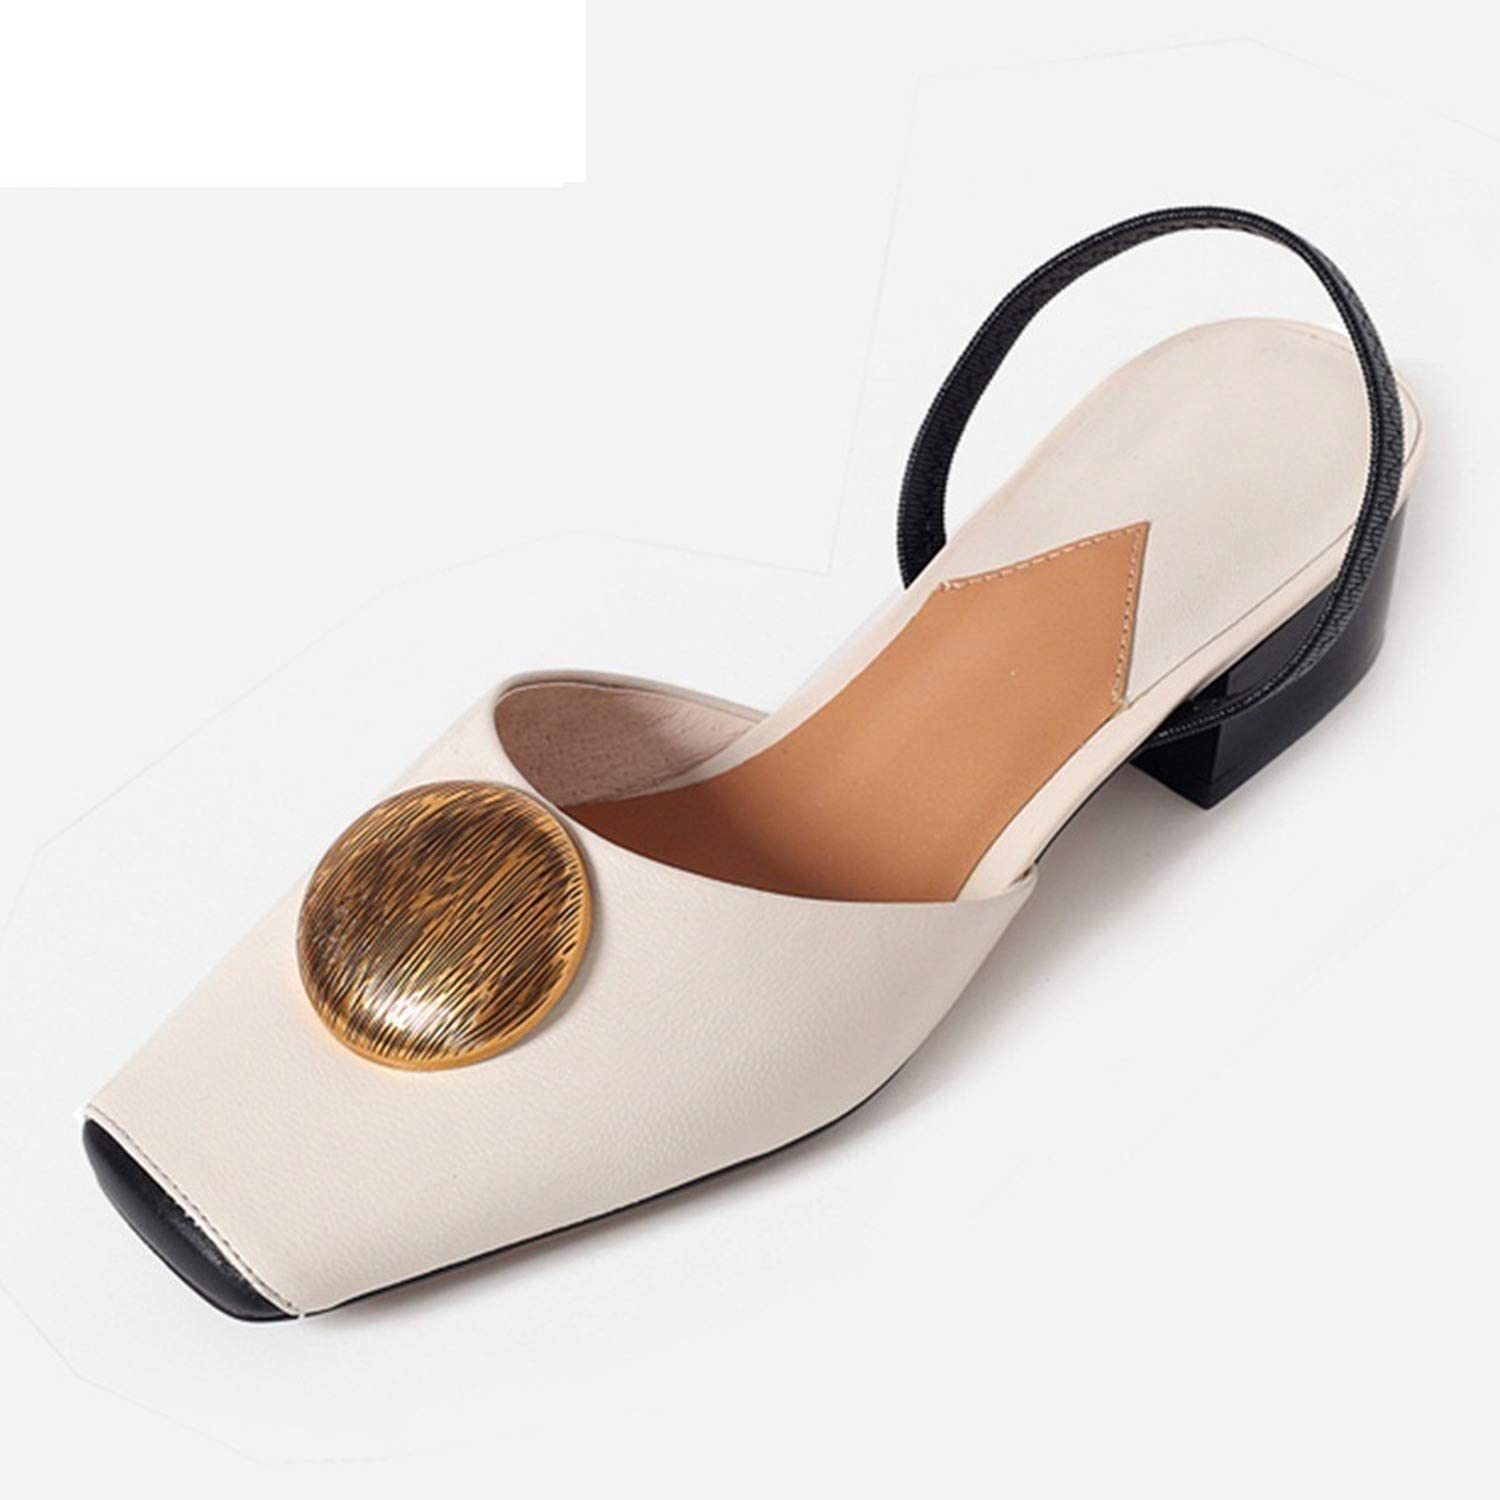 SANDIP MIKEY Summer Genuine Leather shoes Women Sandals Comfortable Date shoes Dress Party Casual Sandals